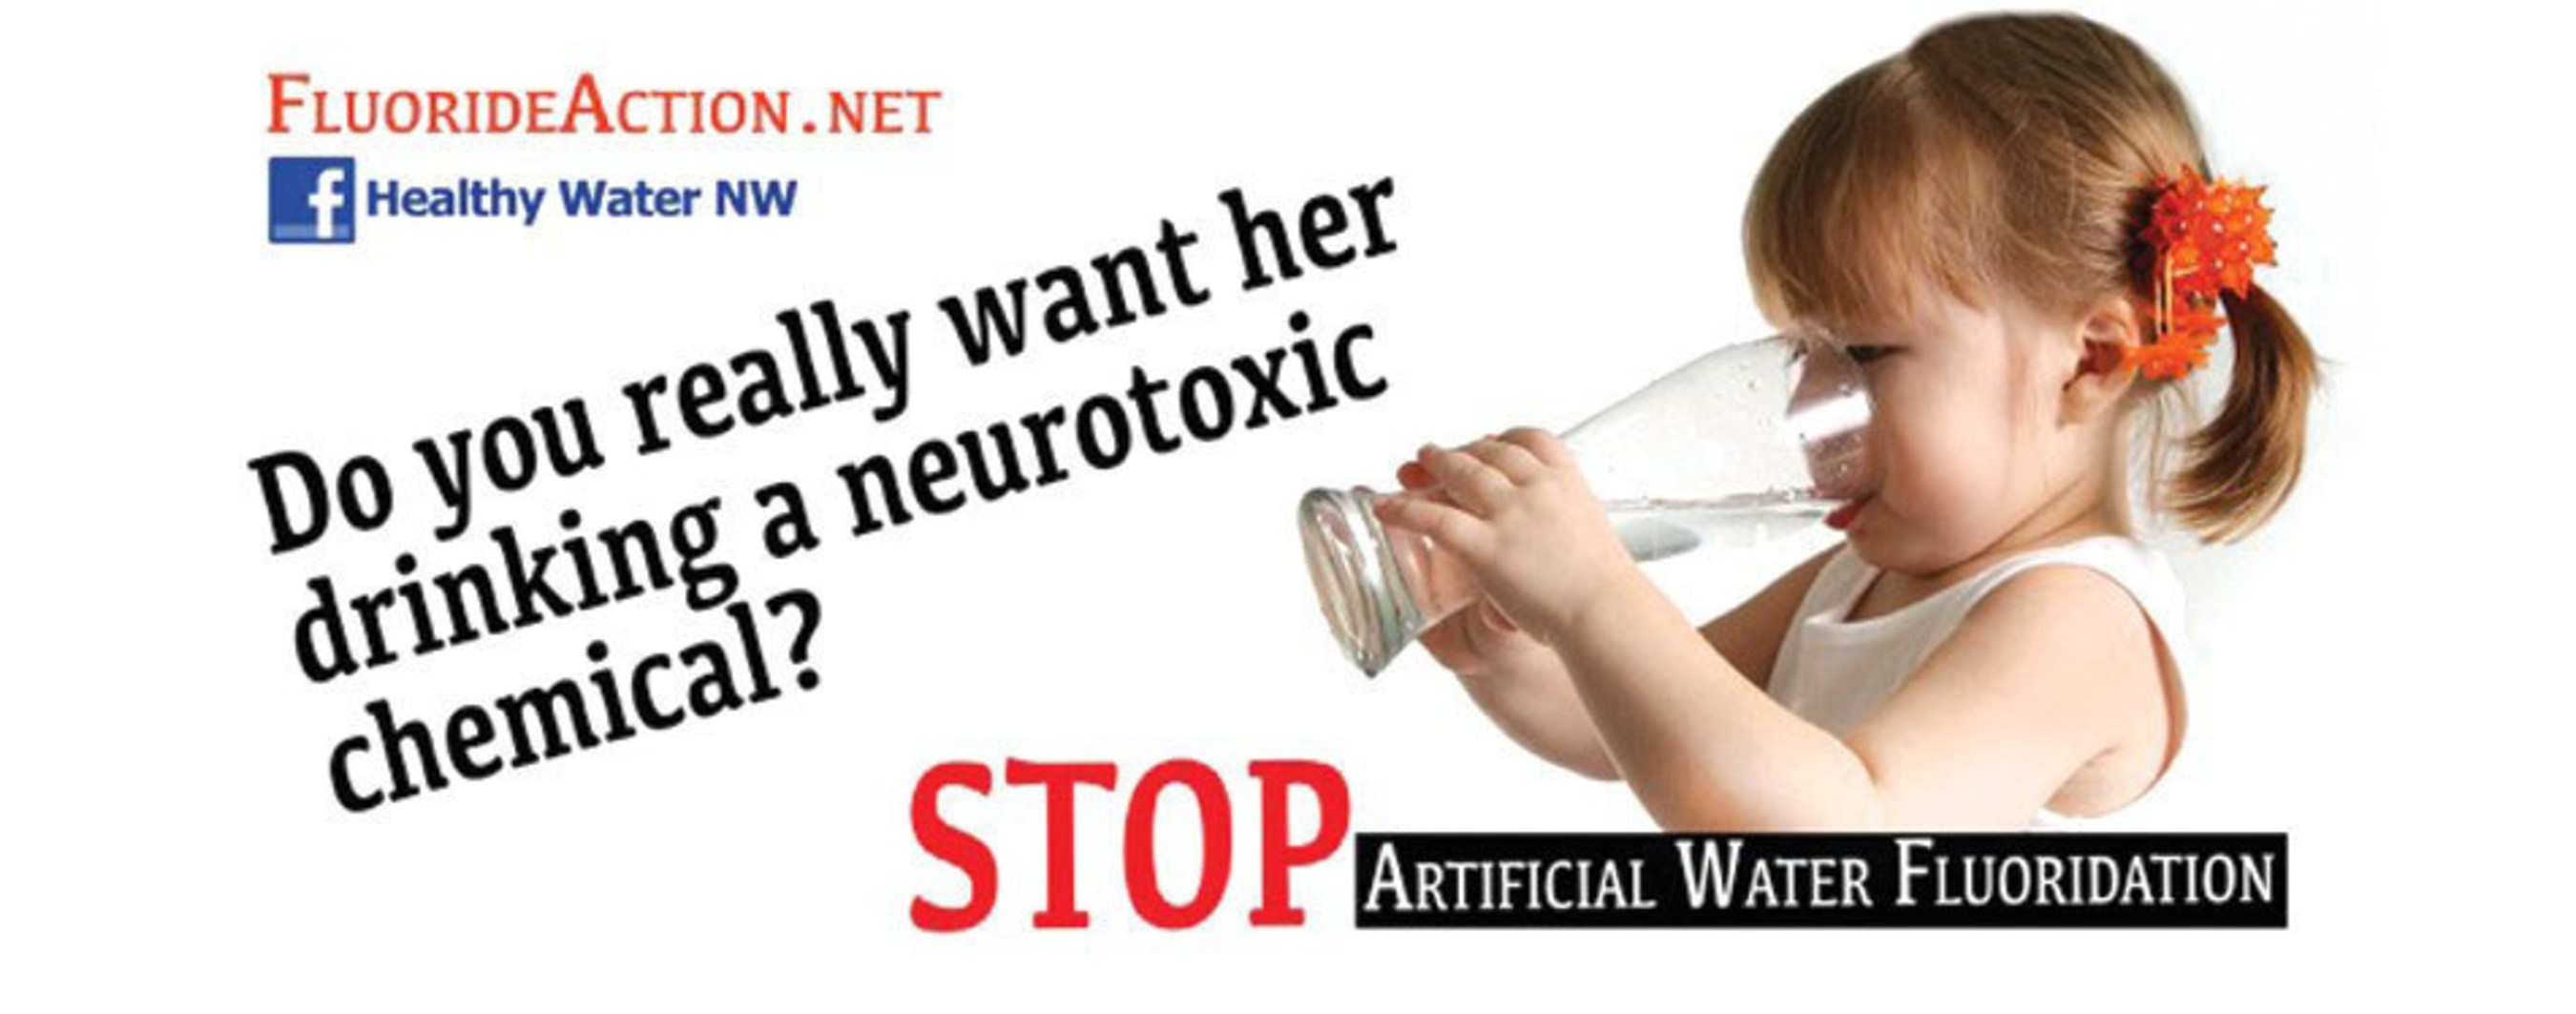 Are You Feeding a Brain Toxin to Your Babies?